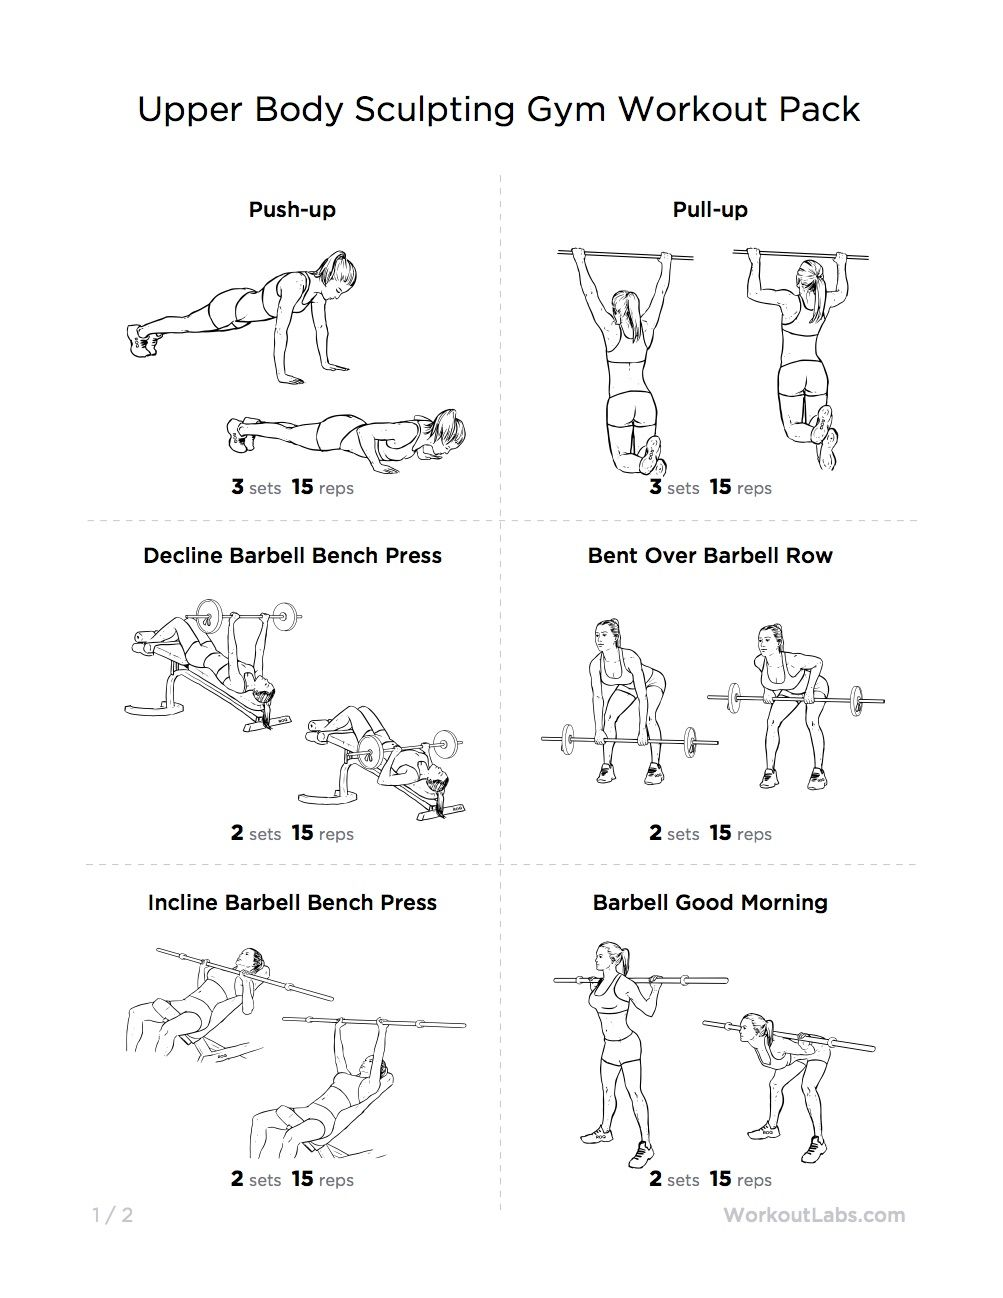 Its Time To Craft That Upper Body Into A Weapon All You Need Is The Right Crafting Tool This Workout